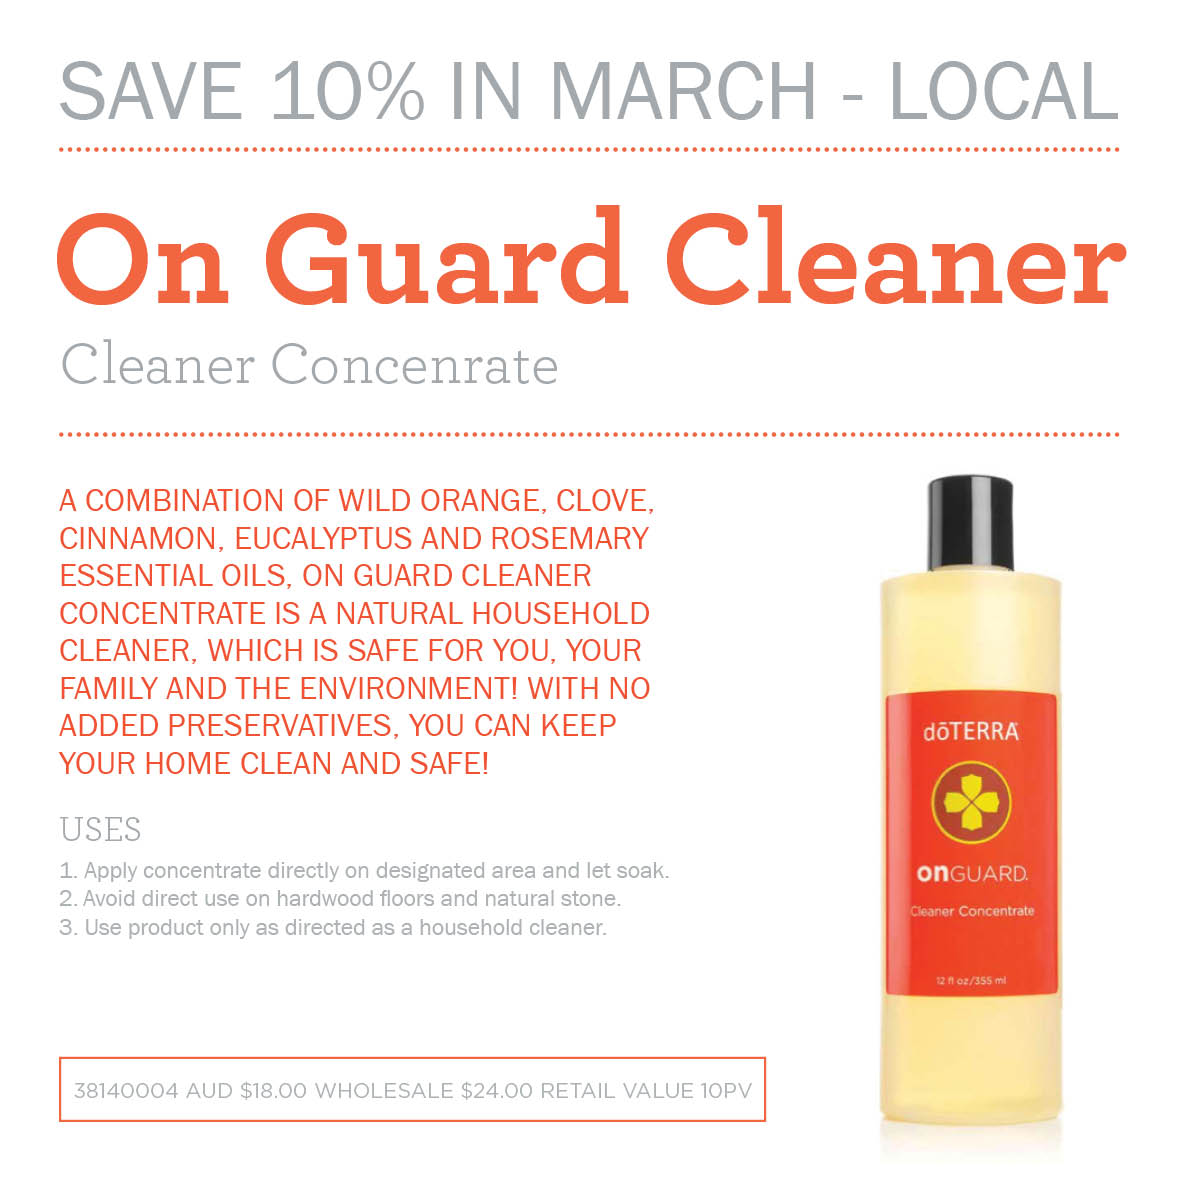 10% off On Guard Cleaner Concentrate during March